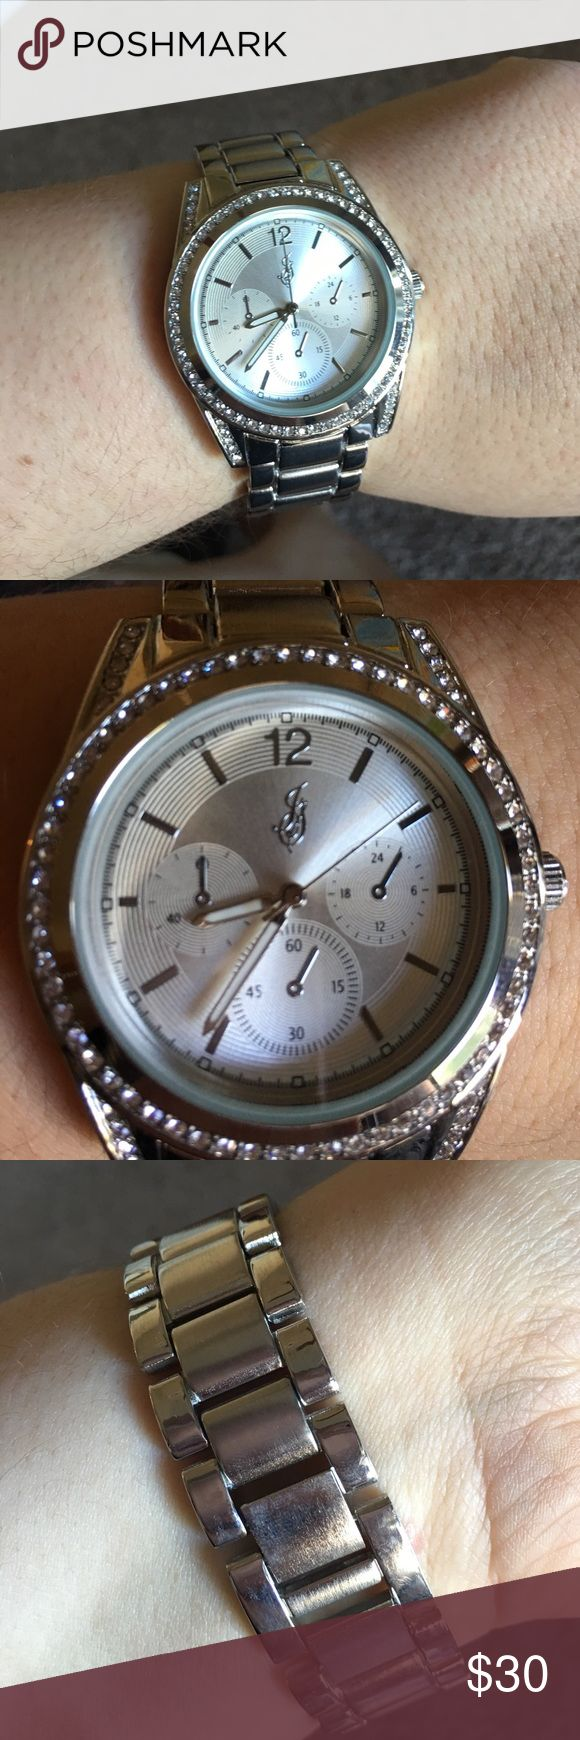 Beautiful silver large face watch. Has a easy detachable link. 3 small hands do not work they are fake. Watch itself works great. Got an Apple Watch so getting rid of all my old watches Jaclyn Smith Accessories Watches